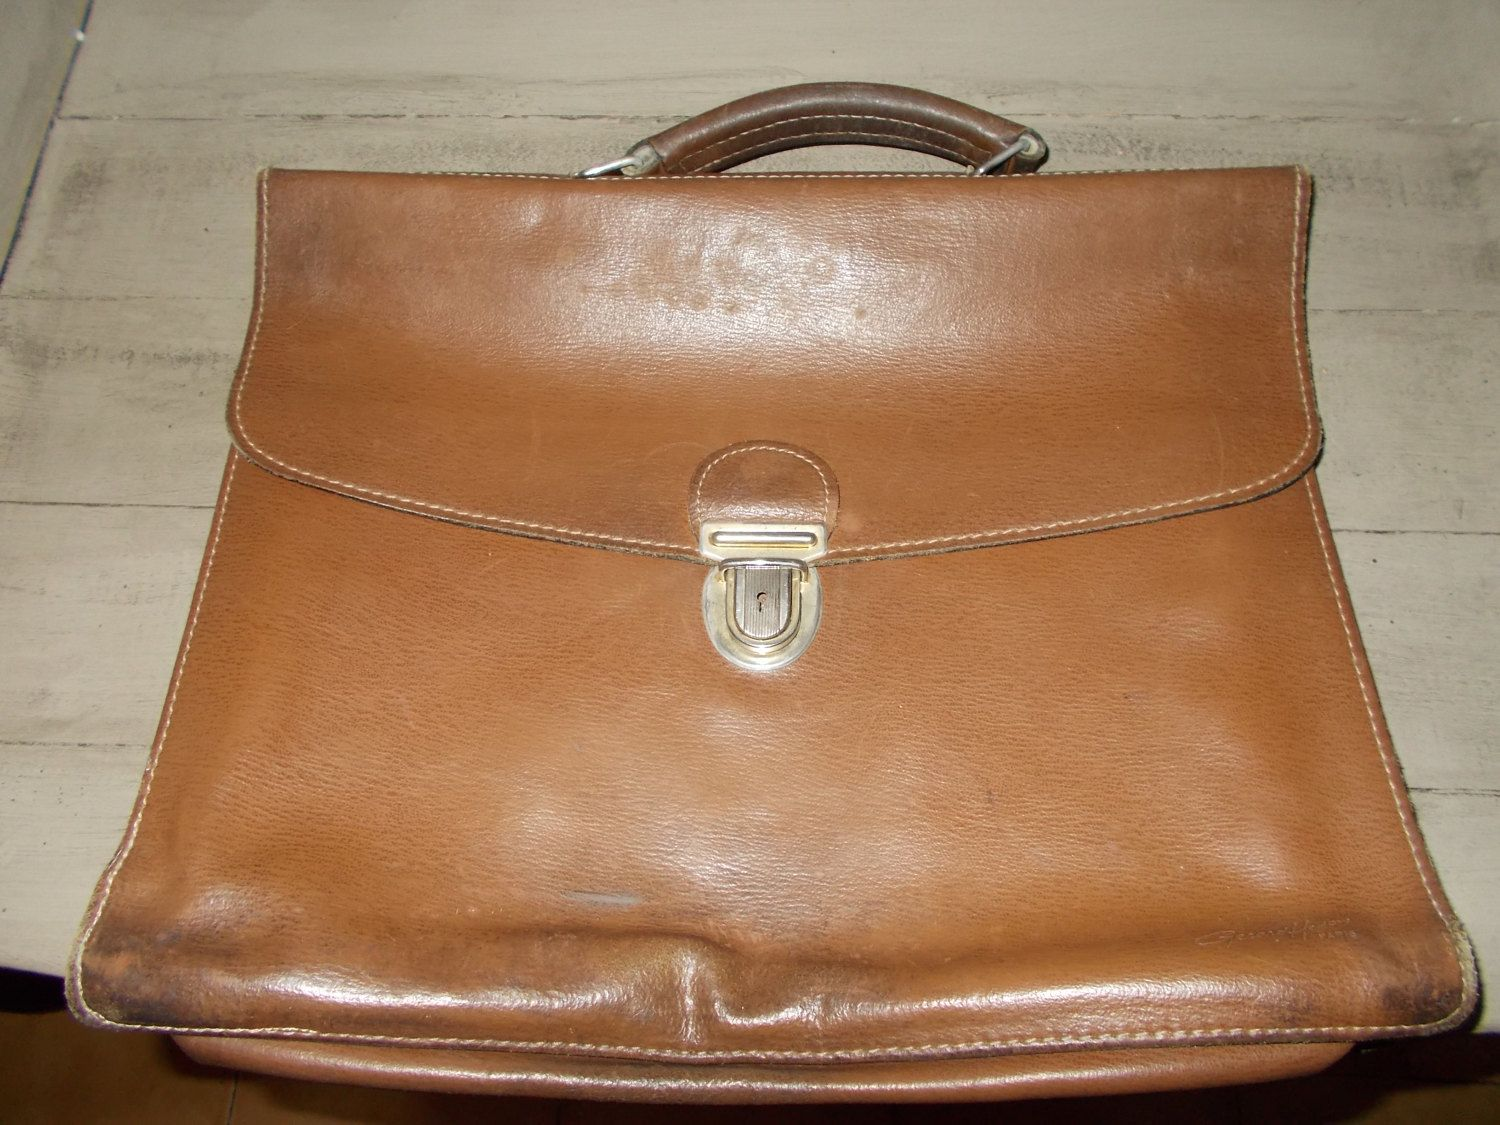 87a0eb453f Authentic Vintage French Leather Briefcase Messenger bag document bag  signed Gerard Paris from 1980 s in very clean condition by  MaisonbrocanteFrance on ...